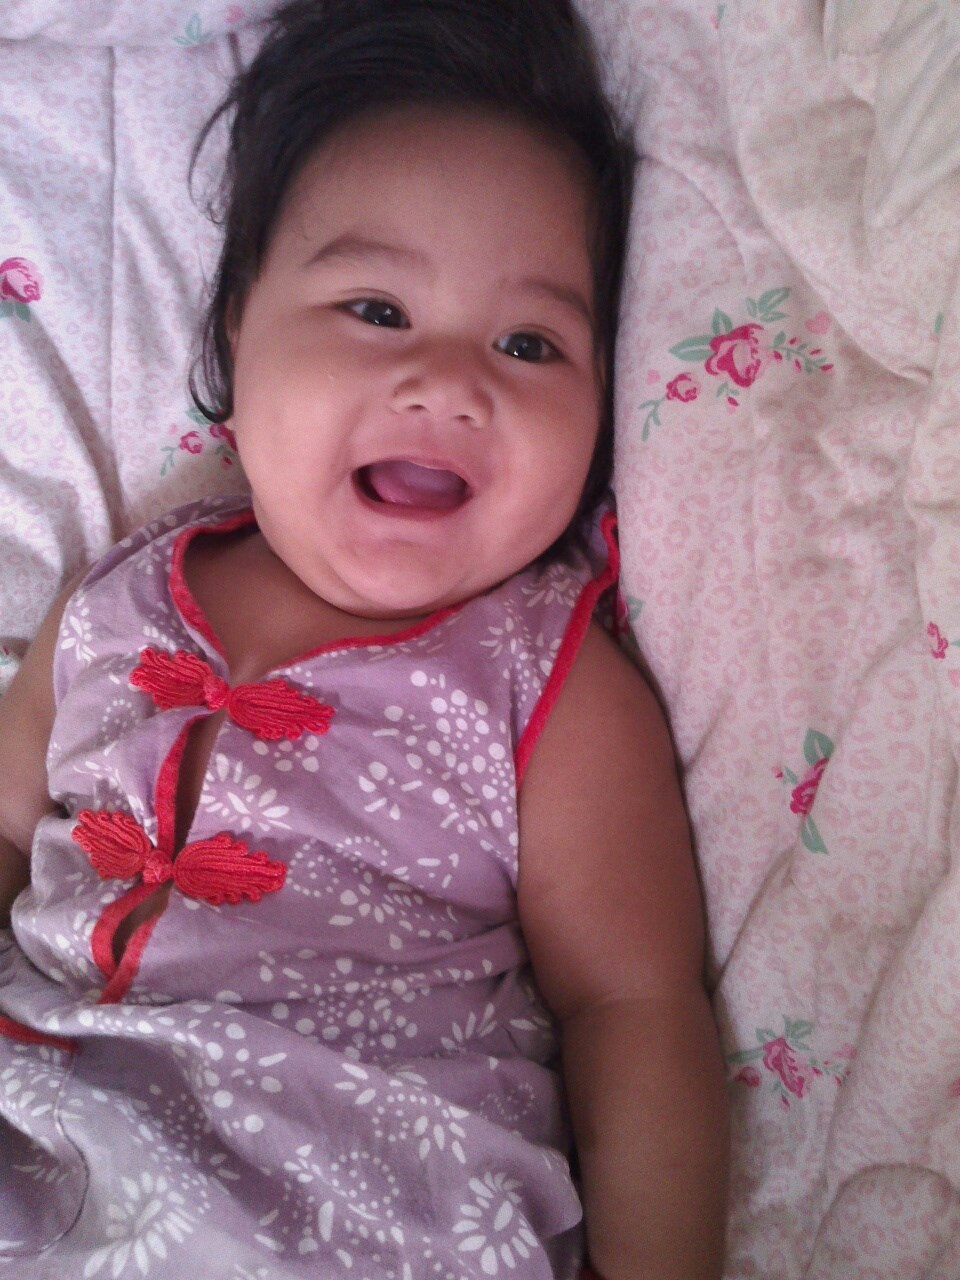 Audry A. Yu, 7 months old